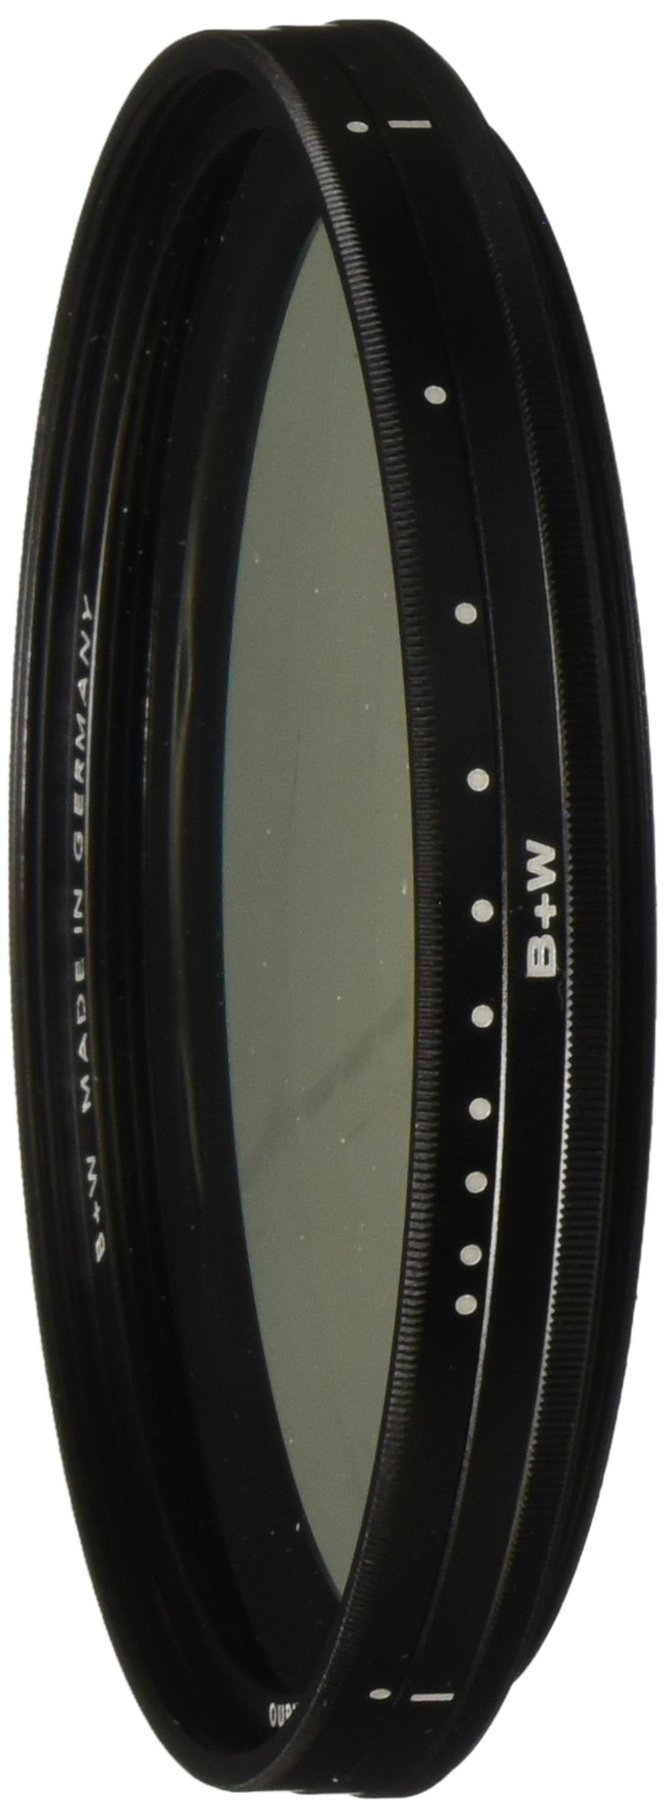 B+W 82mm XS-Pro Digital Vario Neutral Density with Nano Coating for Camera Lens by B+W